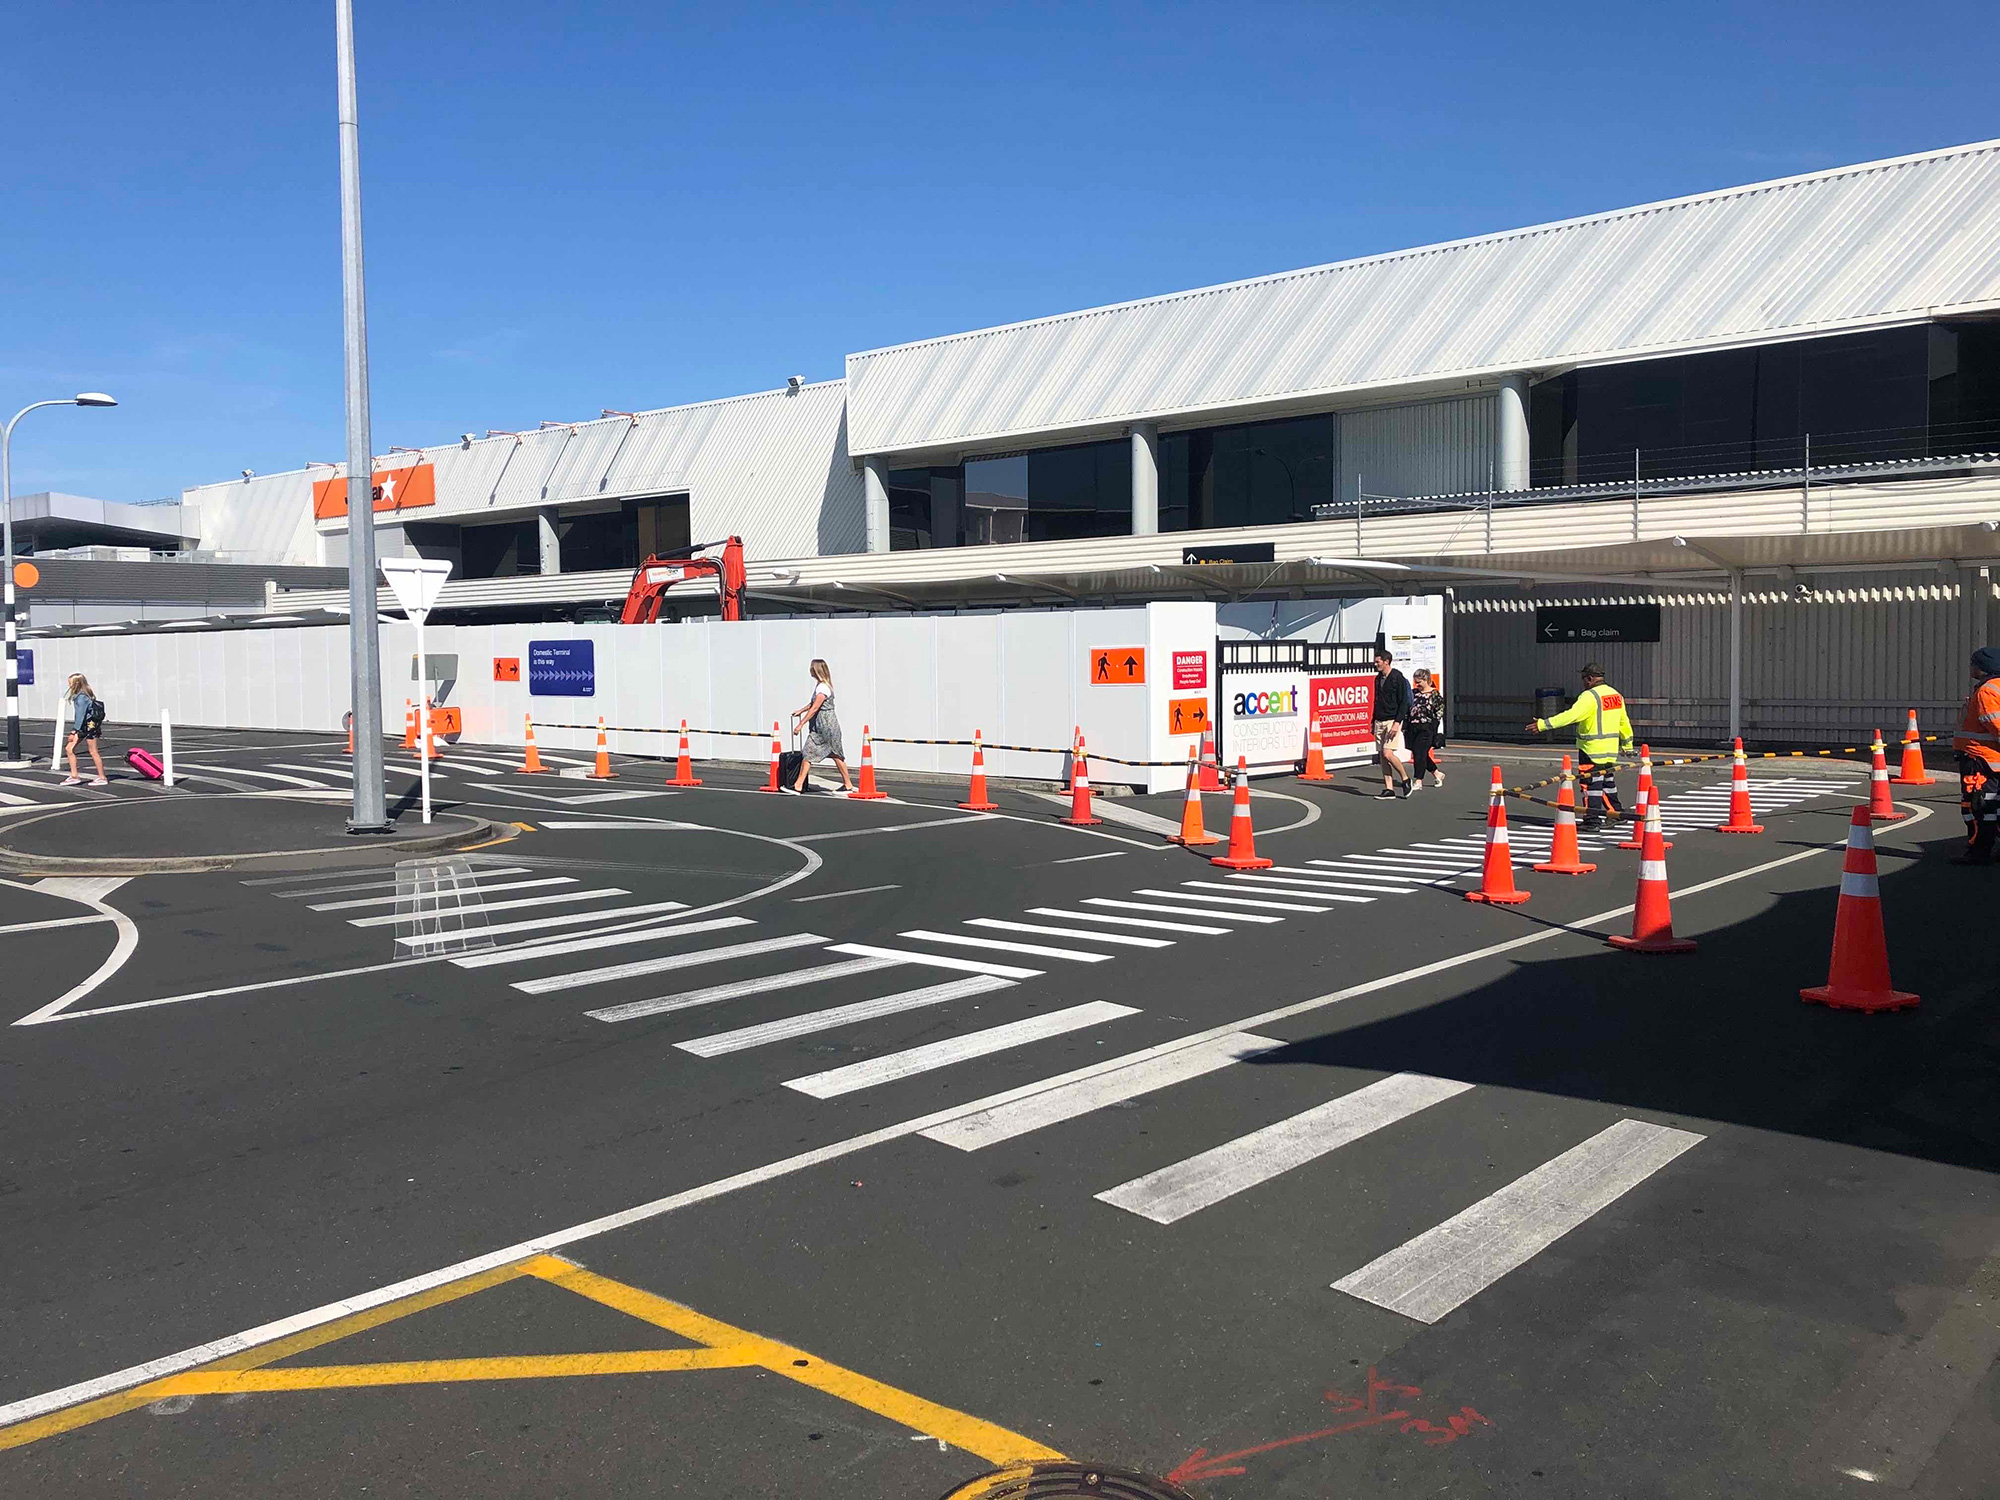 Auckland Airport Domestic Terminal Building Expansion